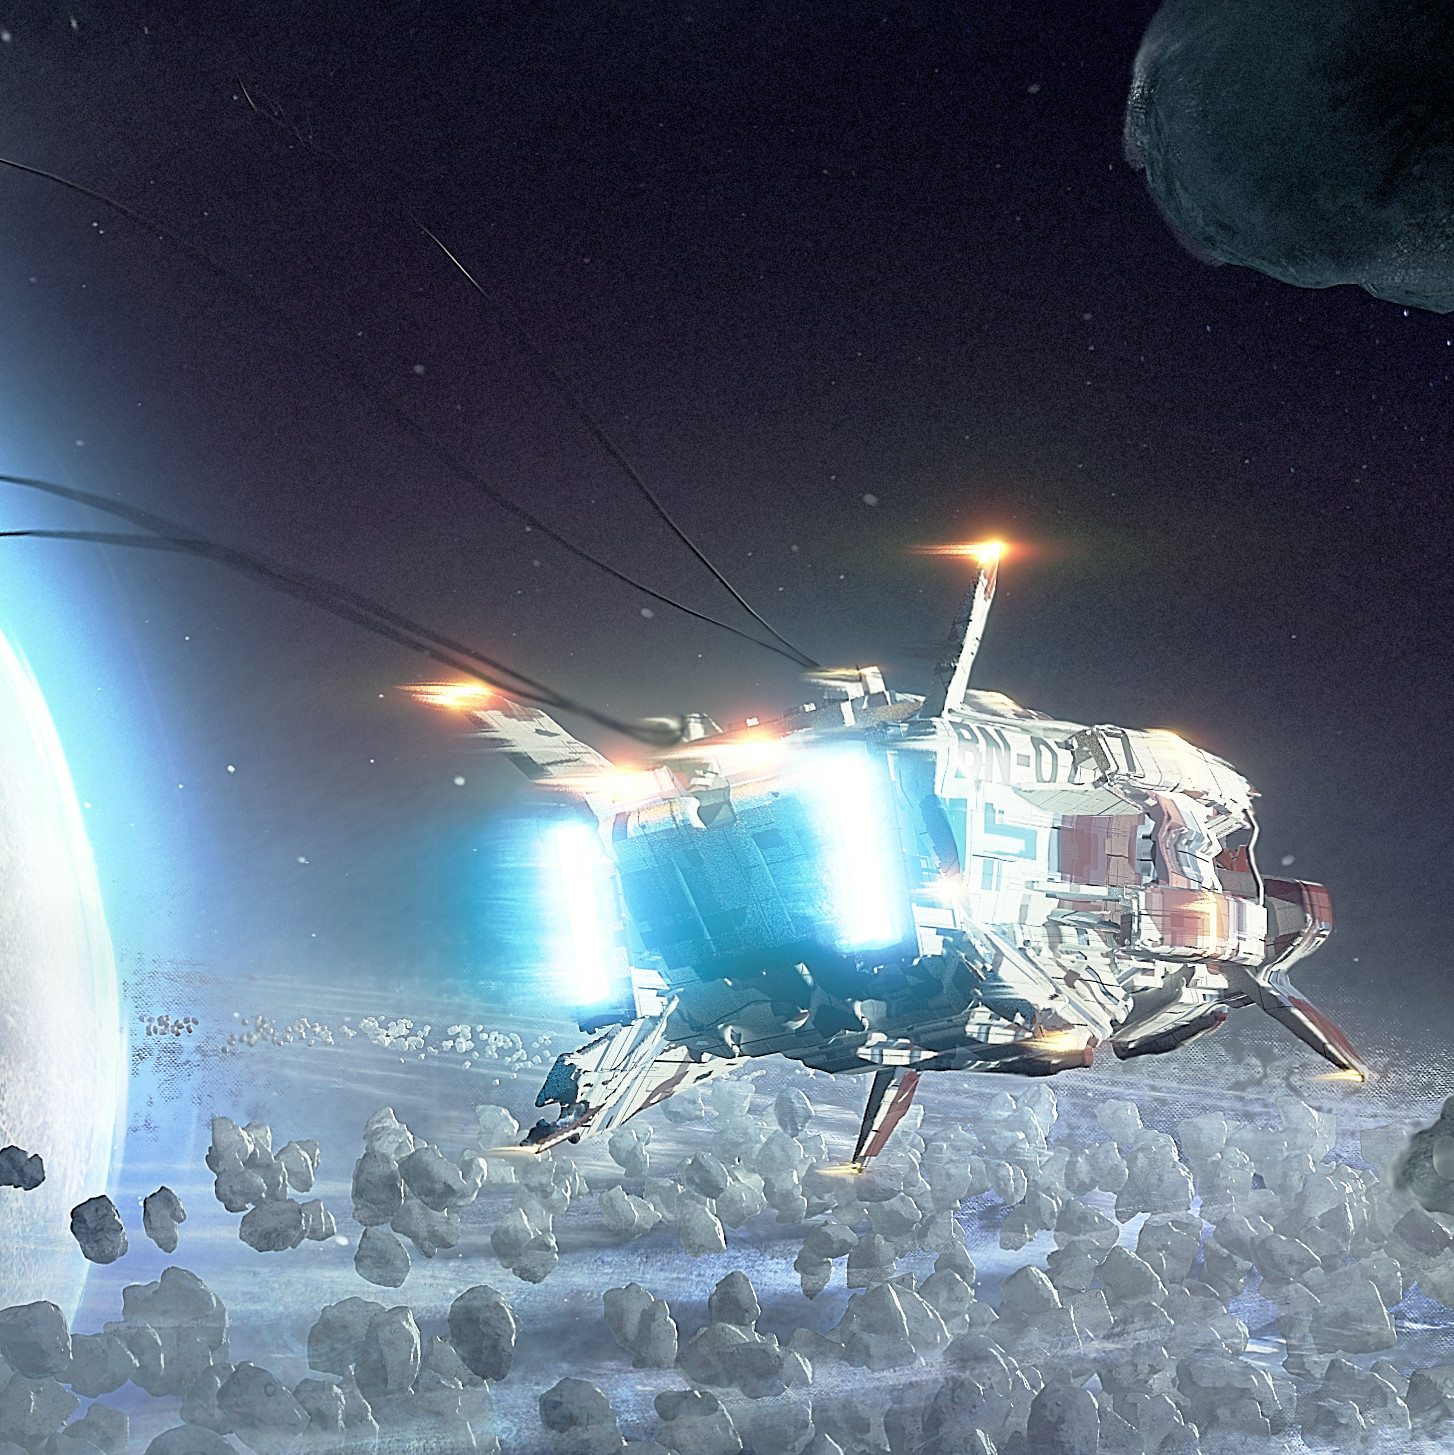 Space environment